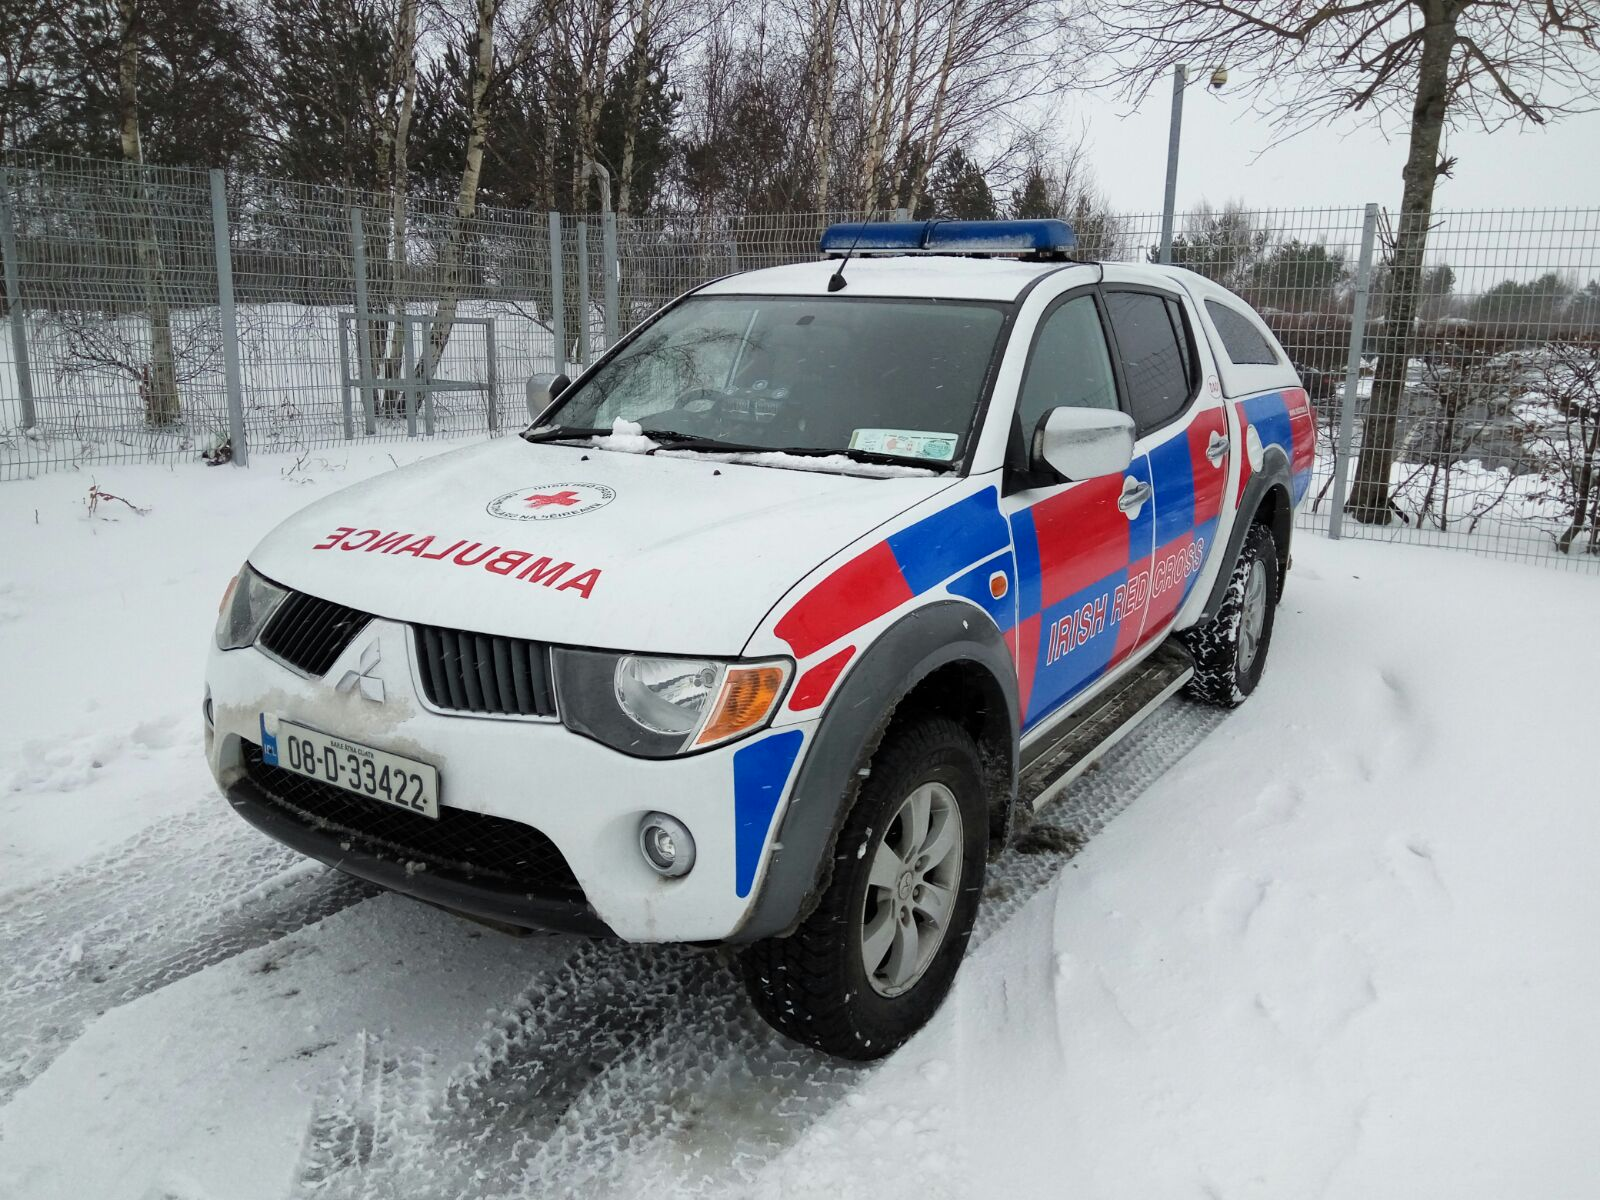 Six Irish Red Cross vehicles working in Waterford and Wexford